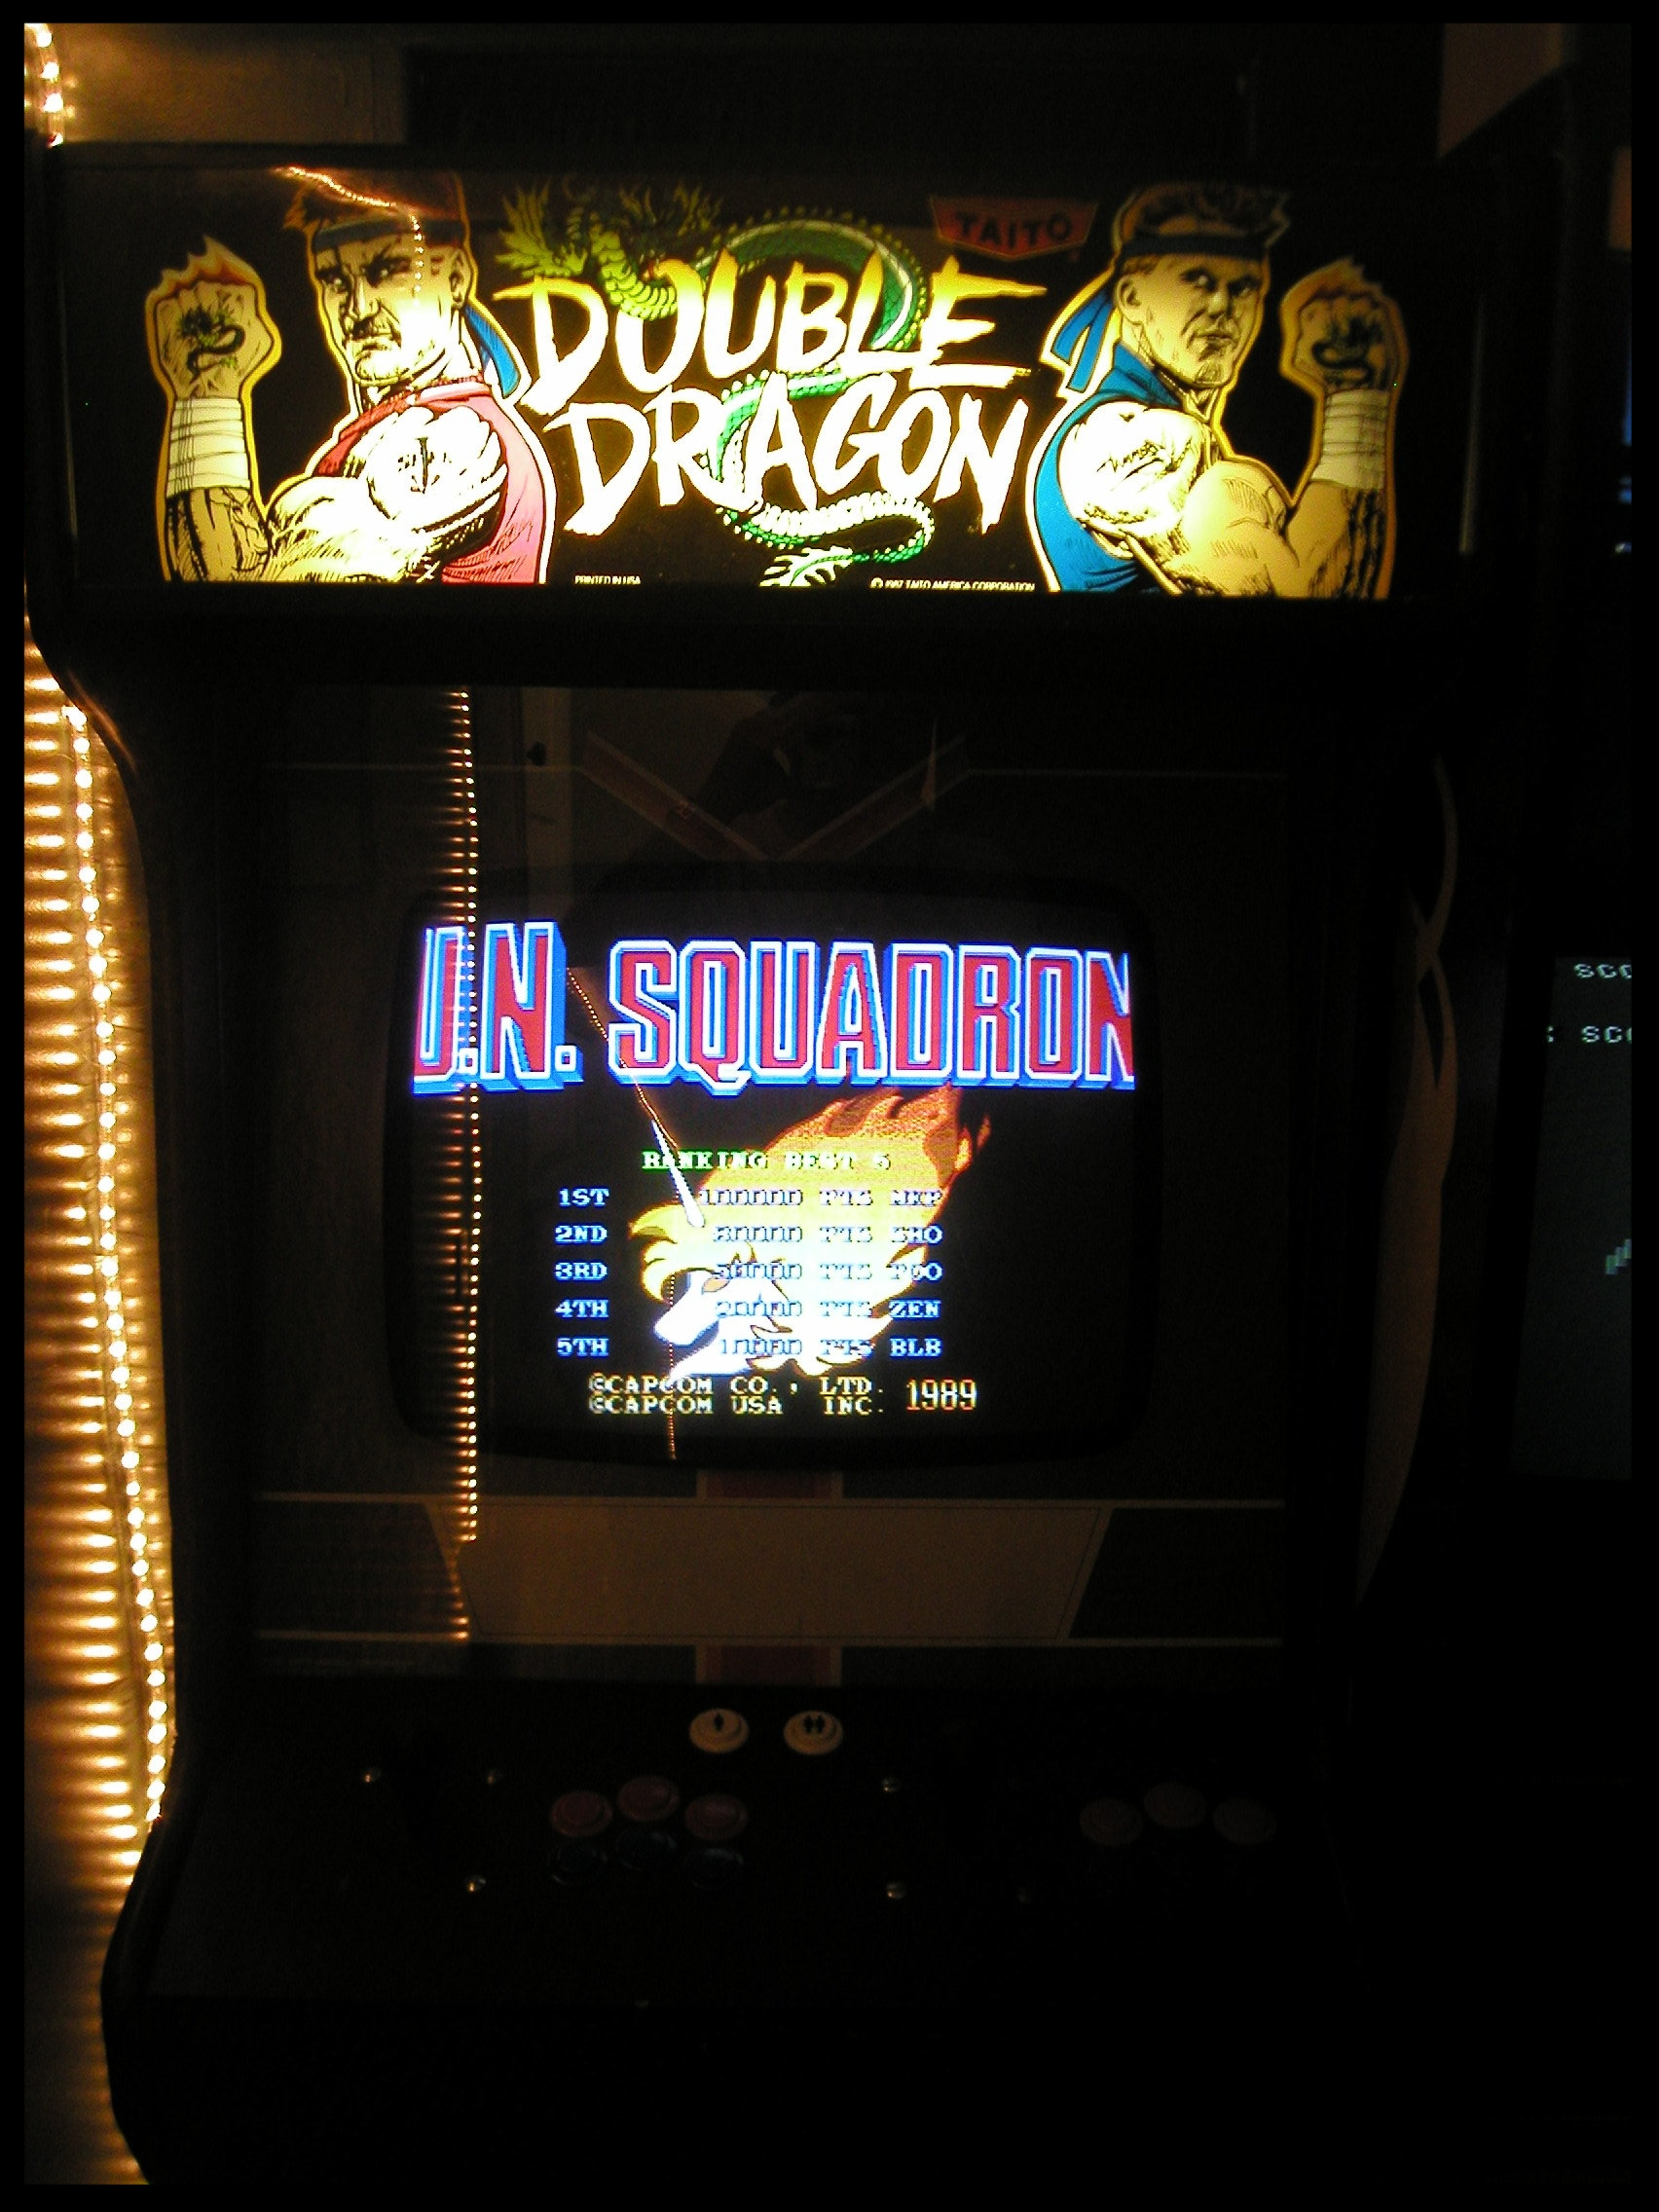 A shot of the switched out board set. Makes for a confusing time at the arcade, eh?